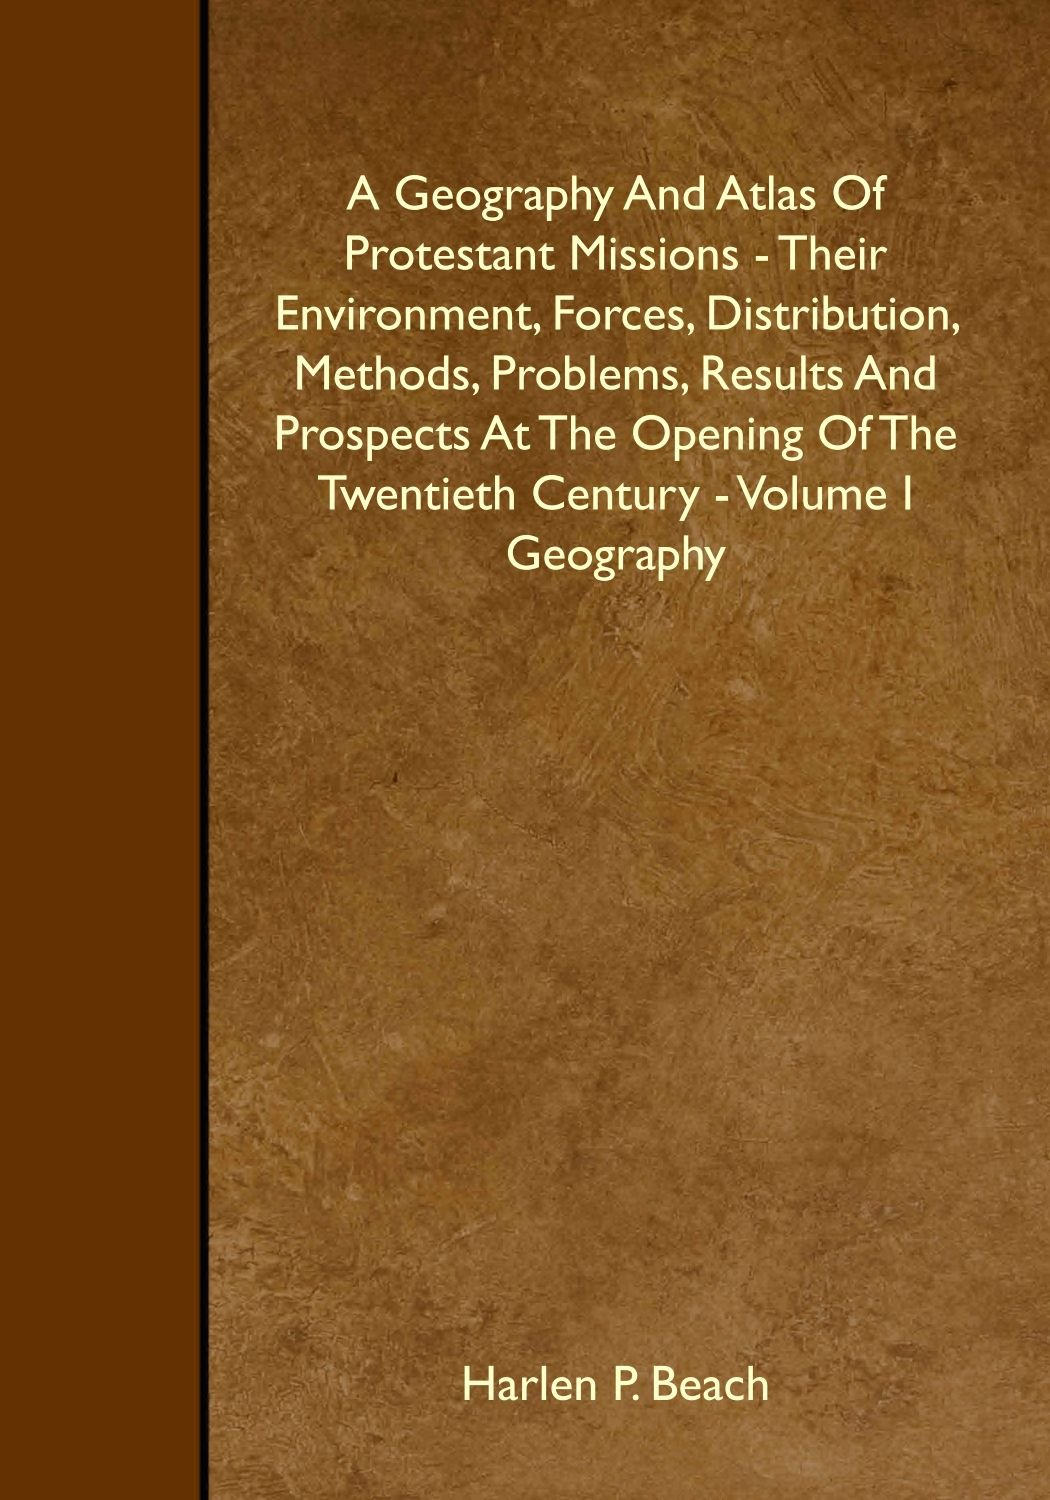 A Geography And Atlas Of Protestant Missions - Their Environment, Forces, Distribution, Methods, Problems, Results And Prospects At The Opening Of The Twentieth Century - Volume I Geography pdf epub